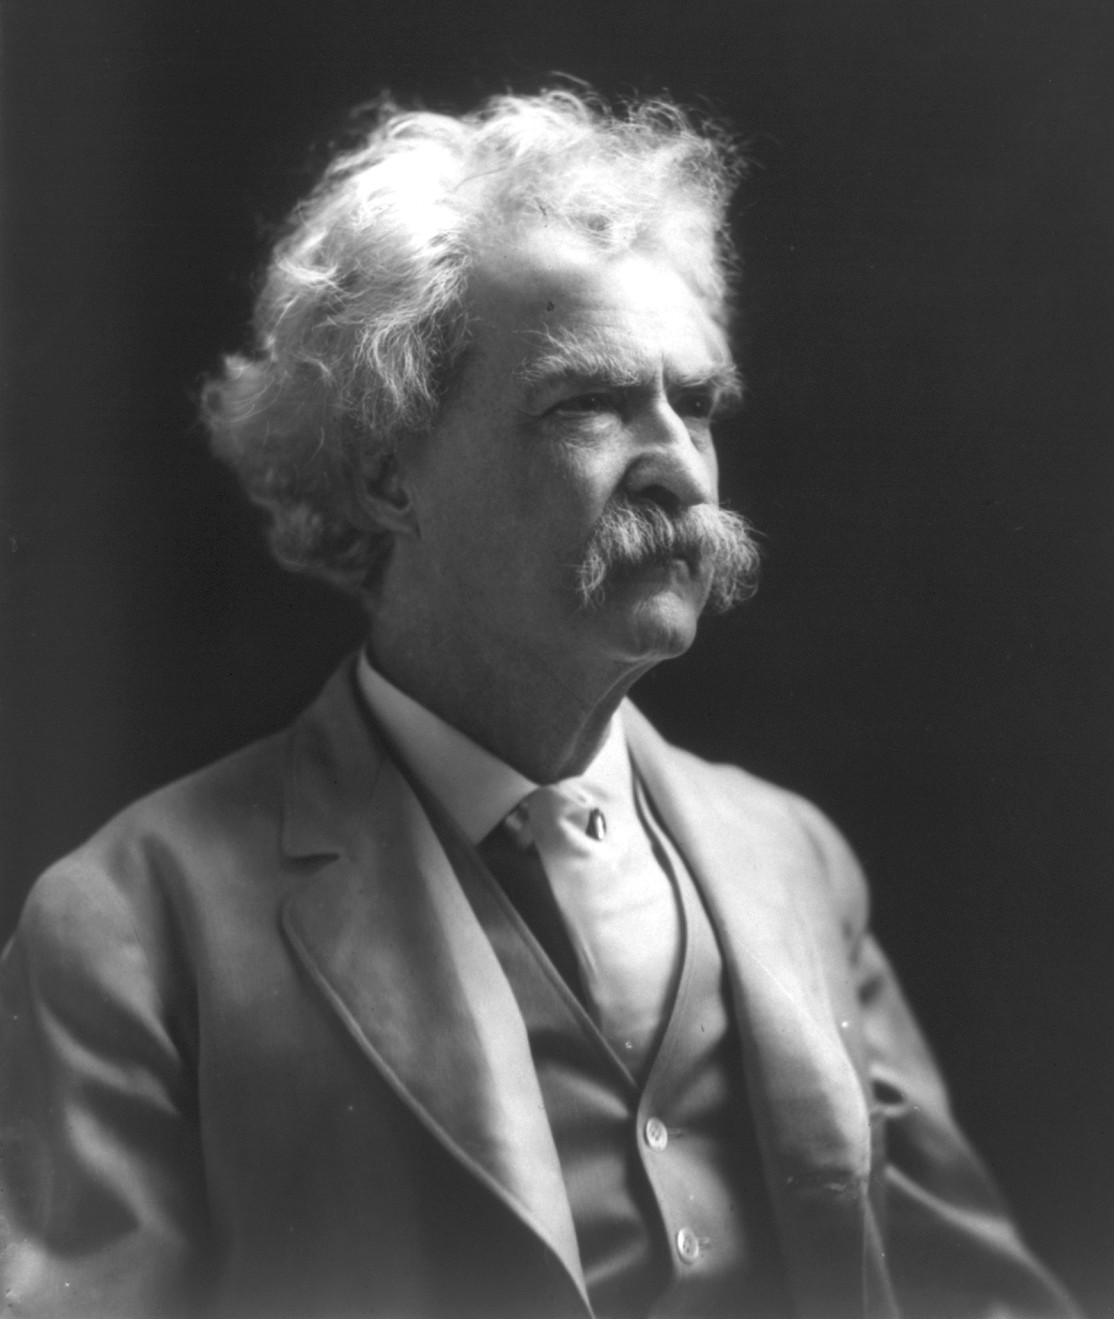 huckleberry finn racism essay understanding huckleberry finn a  understanding huckleberry finn a novel by mark twain samuel portrait of mark twain